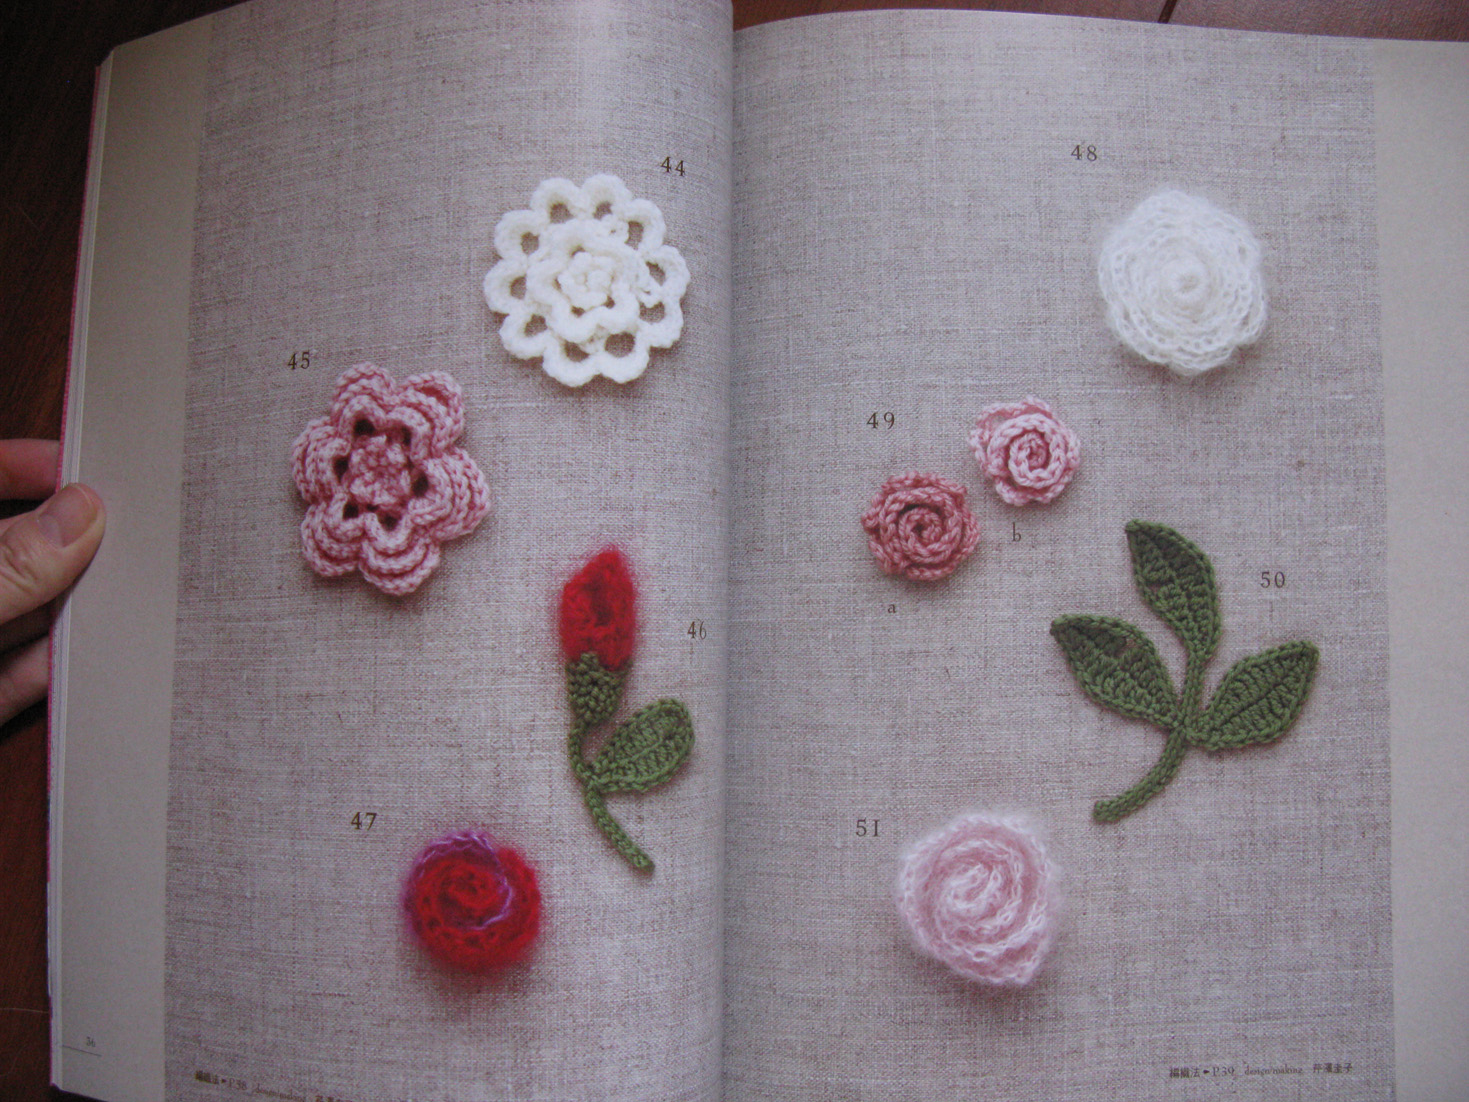 Crochet Stitches Rose : ... .com: Crochet Rose Pattern 100 Japanese Crochet Patterns Book